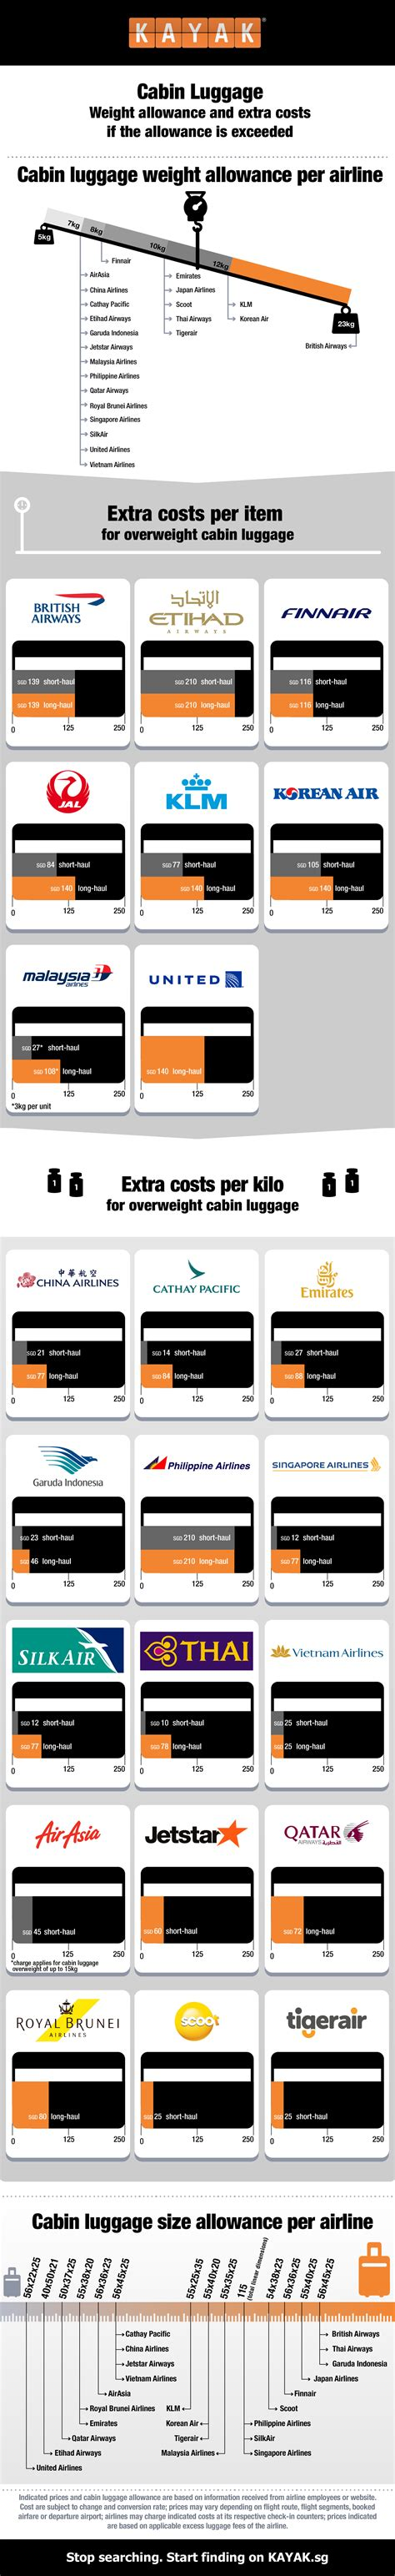 Travel Hack: Cost of excess cabin baggages revealed for 23